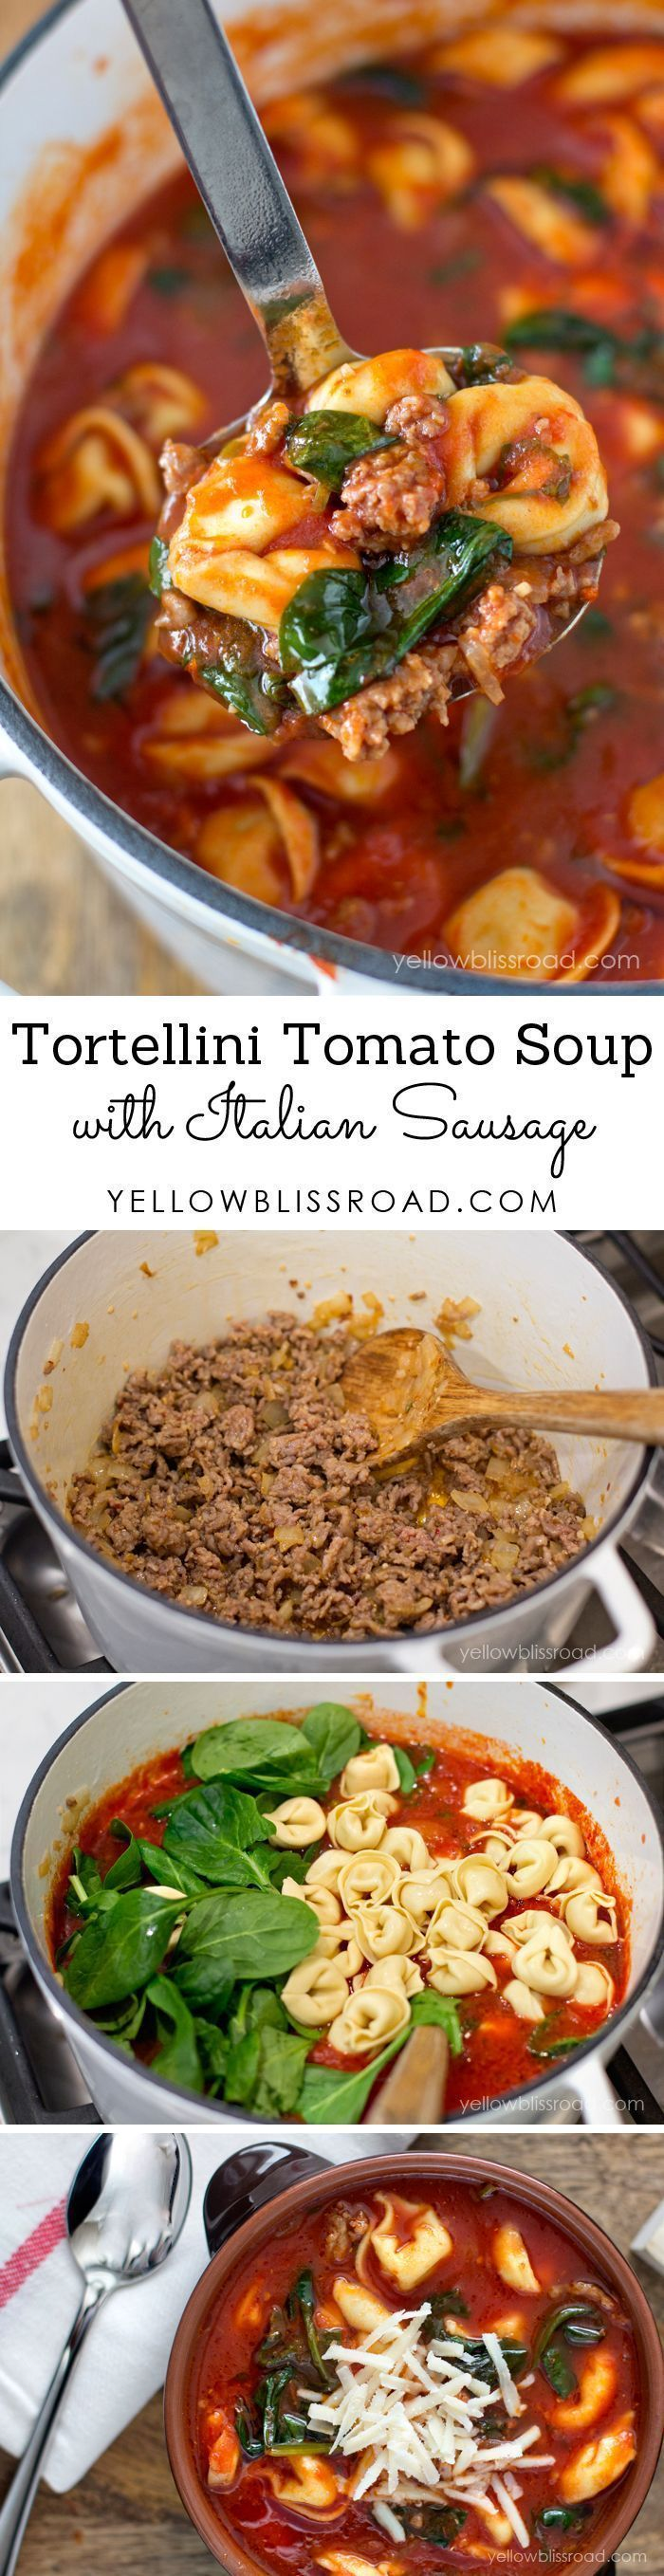 Tortellini Tomato and Spinach Soup with Italian Sausage recipe. How good does this look?